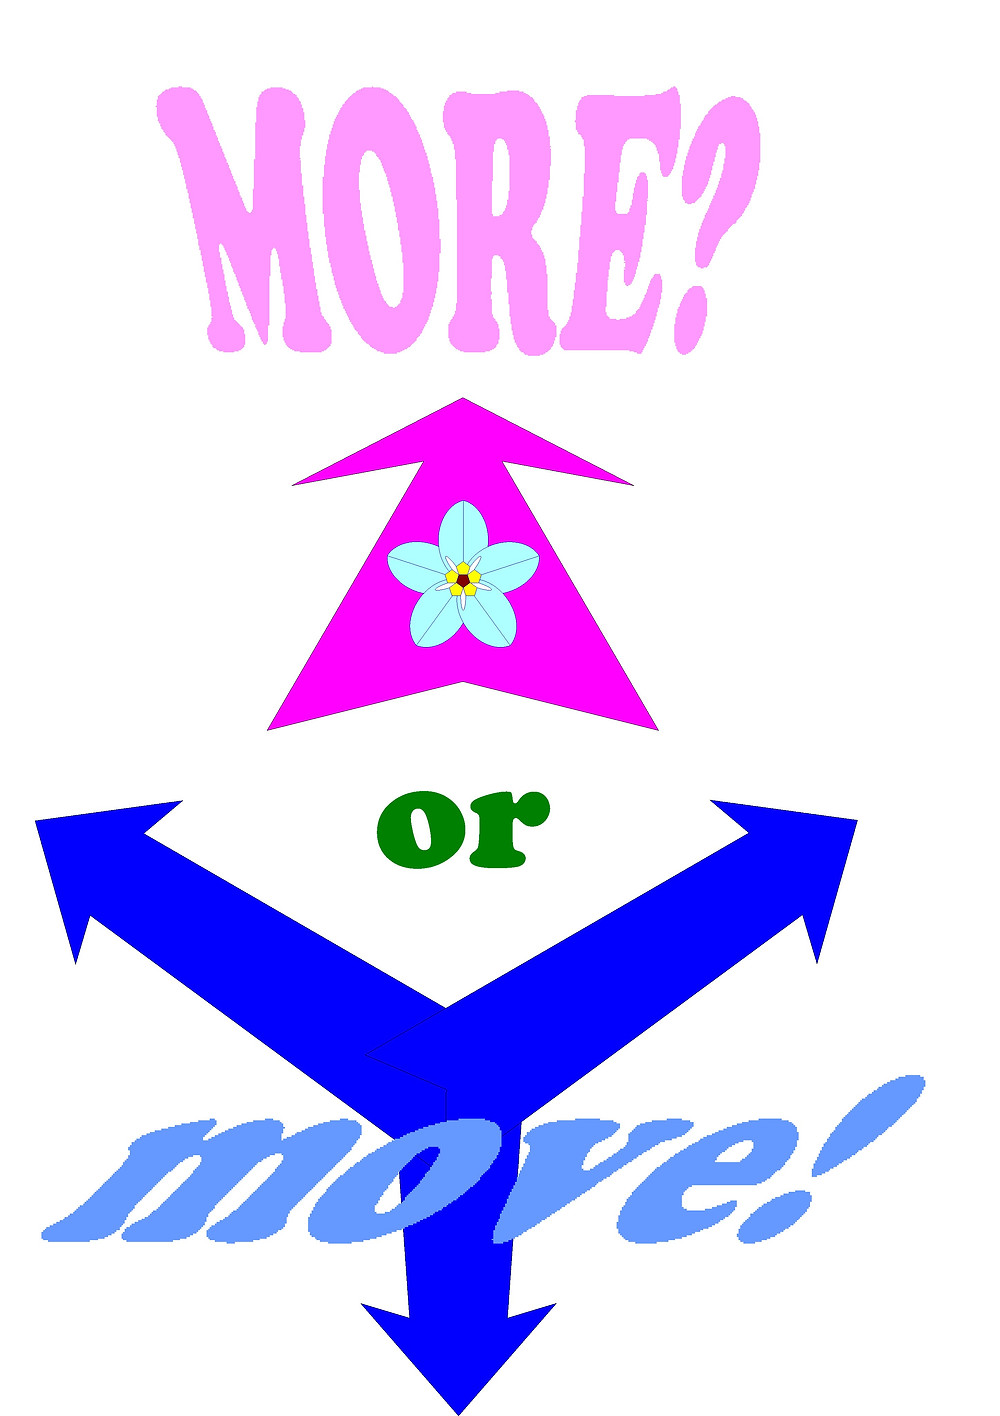 Arrows representing the More or Move Forget-Me-Not